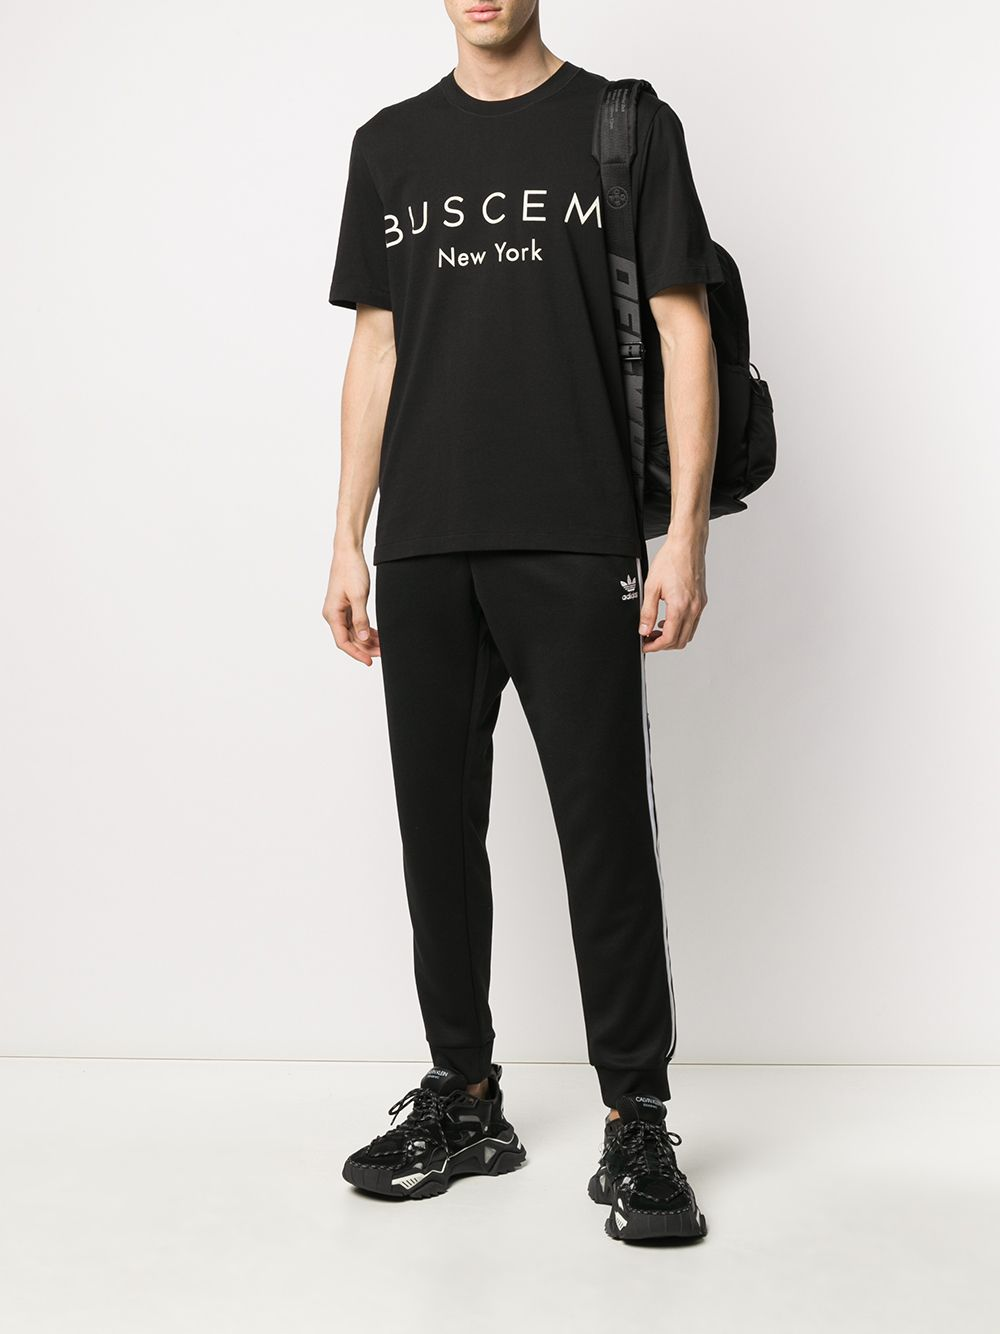 Picture of Buscemi | Logo-Print Cotton T-Shirt